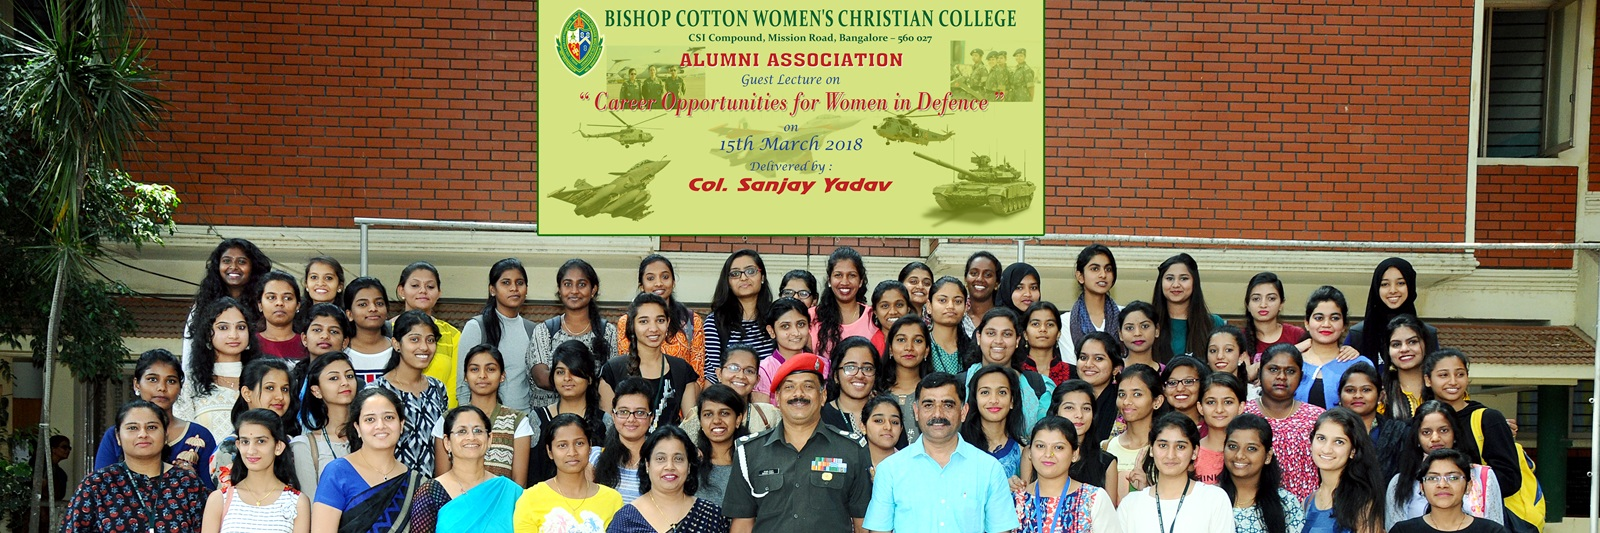 Bishop Cotton Women's Christian College | Bangalore